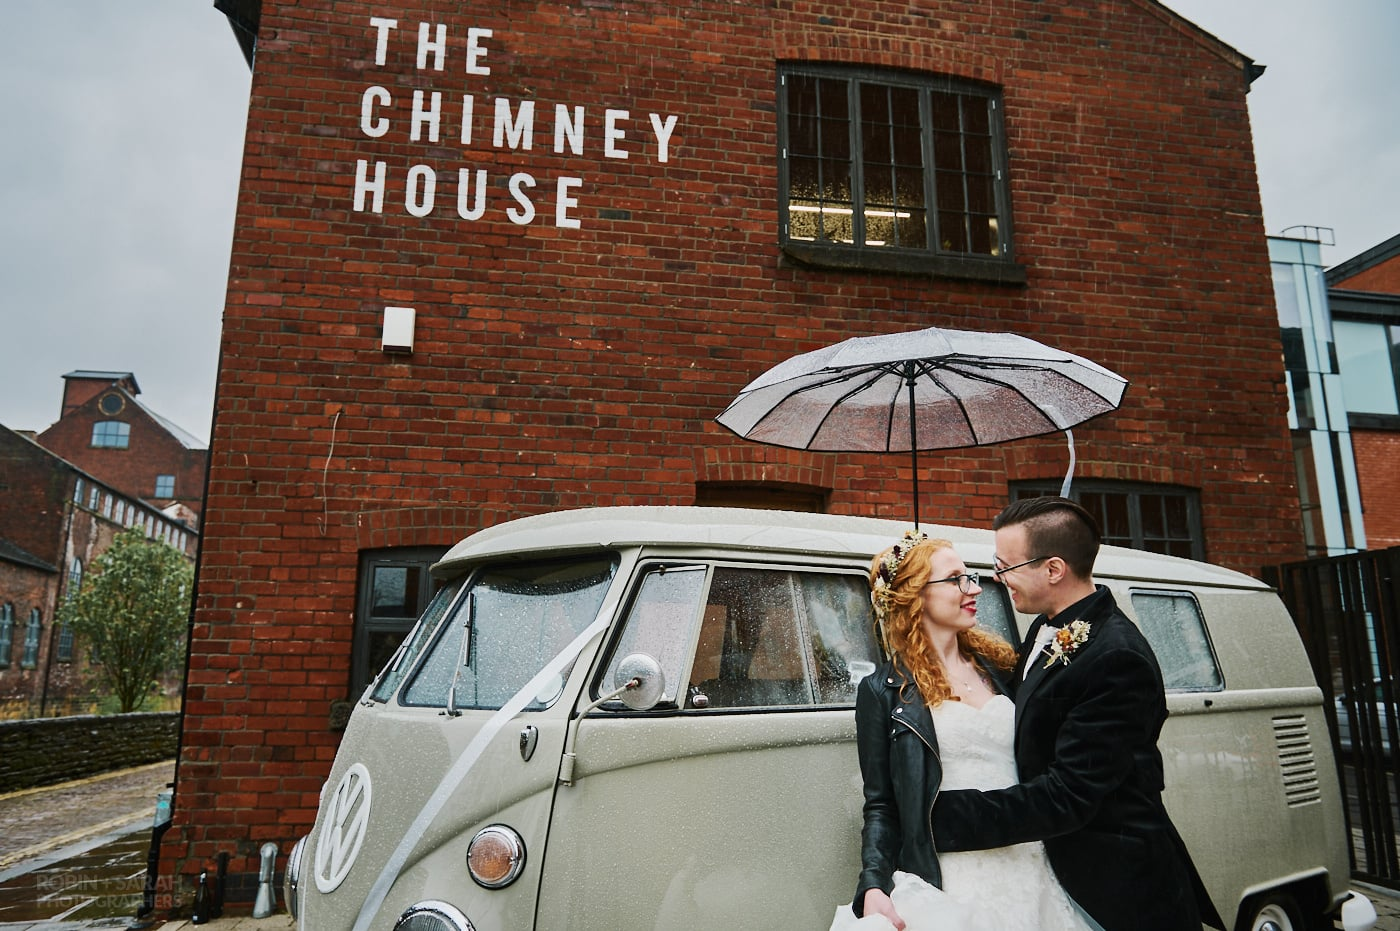 Bride and groom under umbrella outside The Chimney House wedding venue in Sheffield on a rainy day